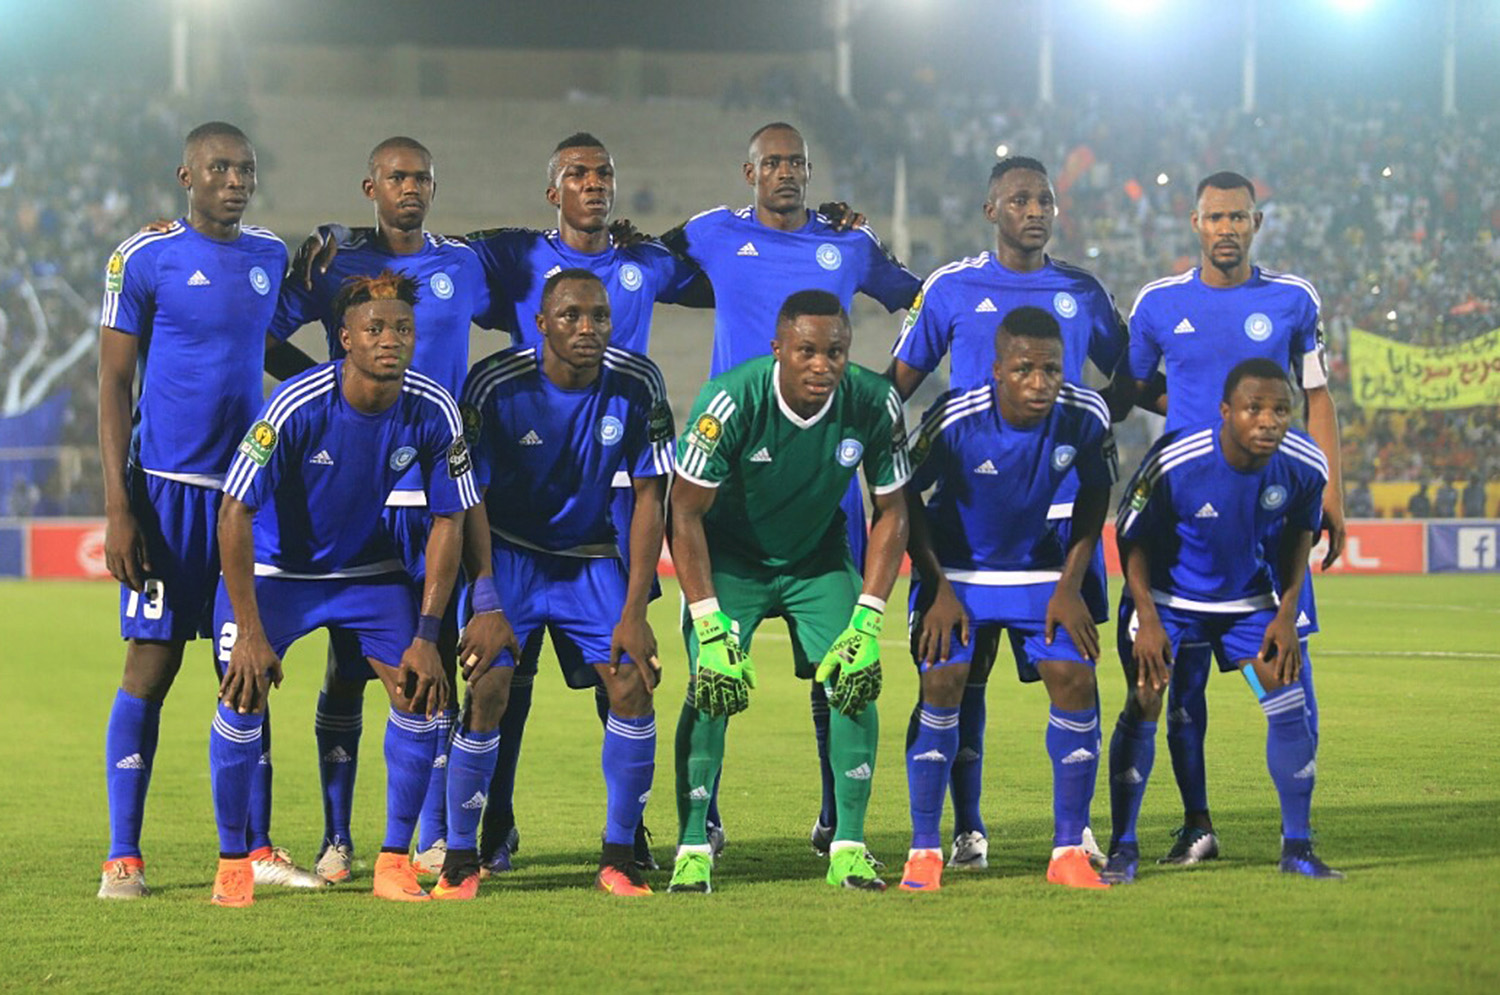 Sudanese power house Al Hilal protest against Moroccan referee Radwan Gayed ahead of Champions League game against Al Ahly